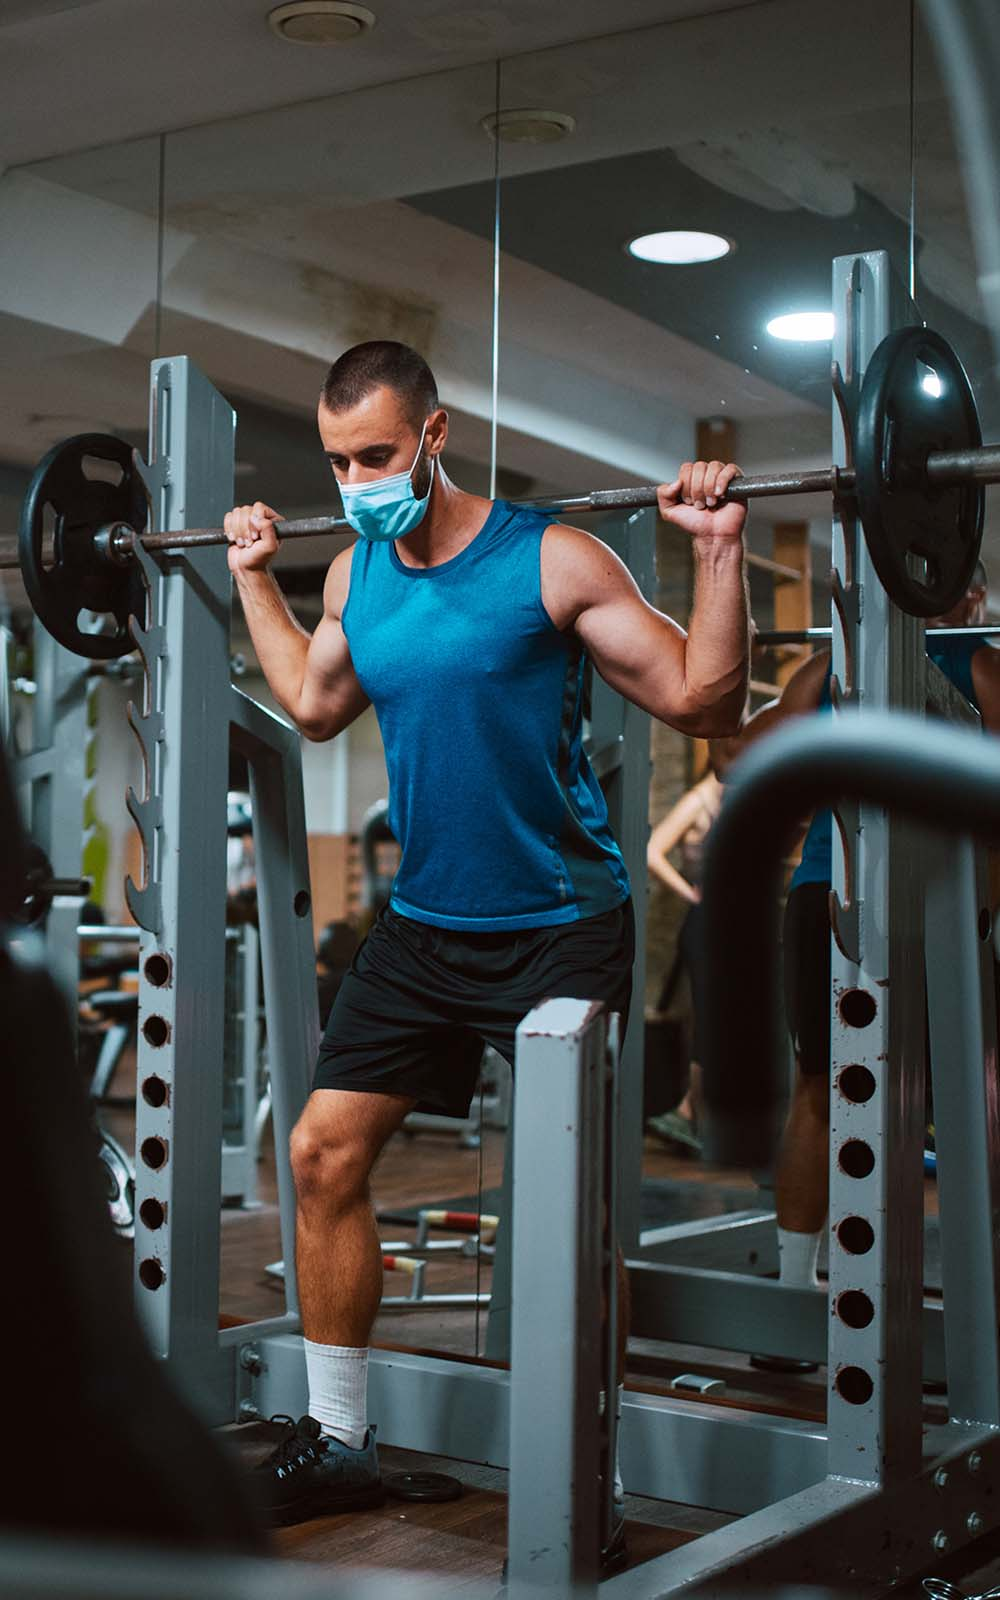 Masked male lifting weights